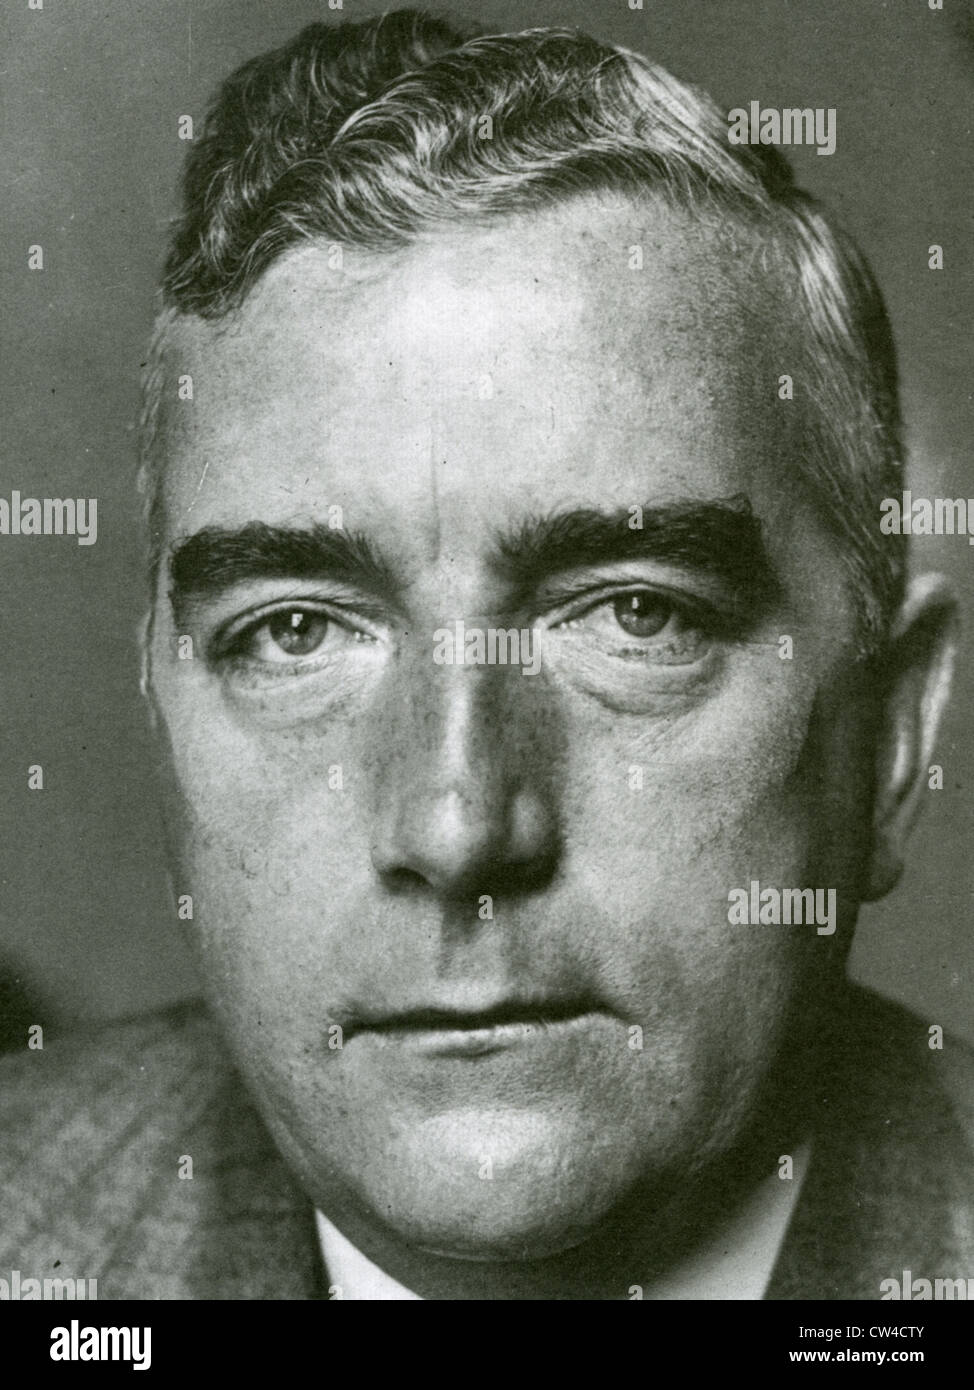 ROBERT  MENZIES (1894-1978) Australian politician and 12th PM of Australia about 1940 - Stock Image